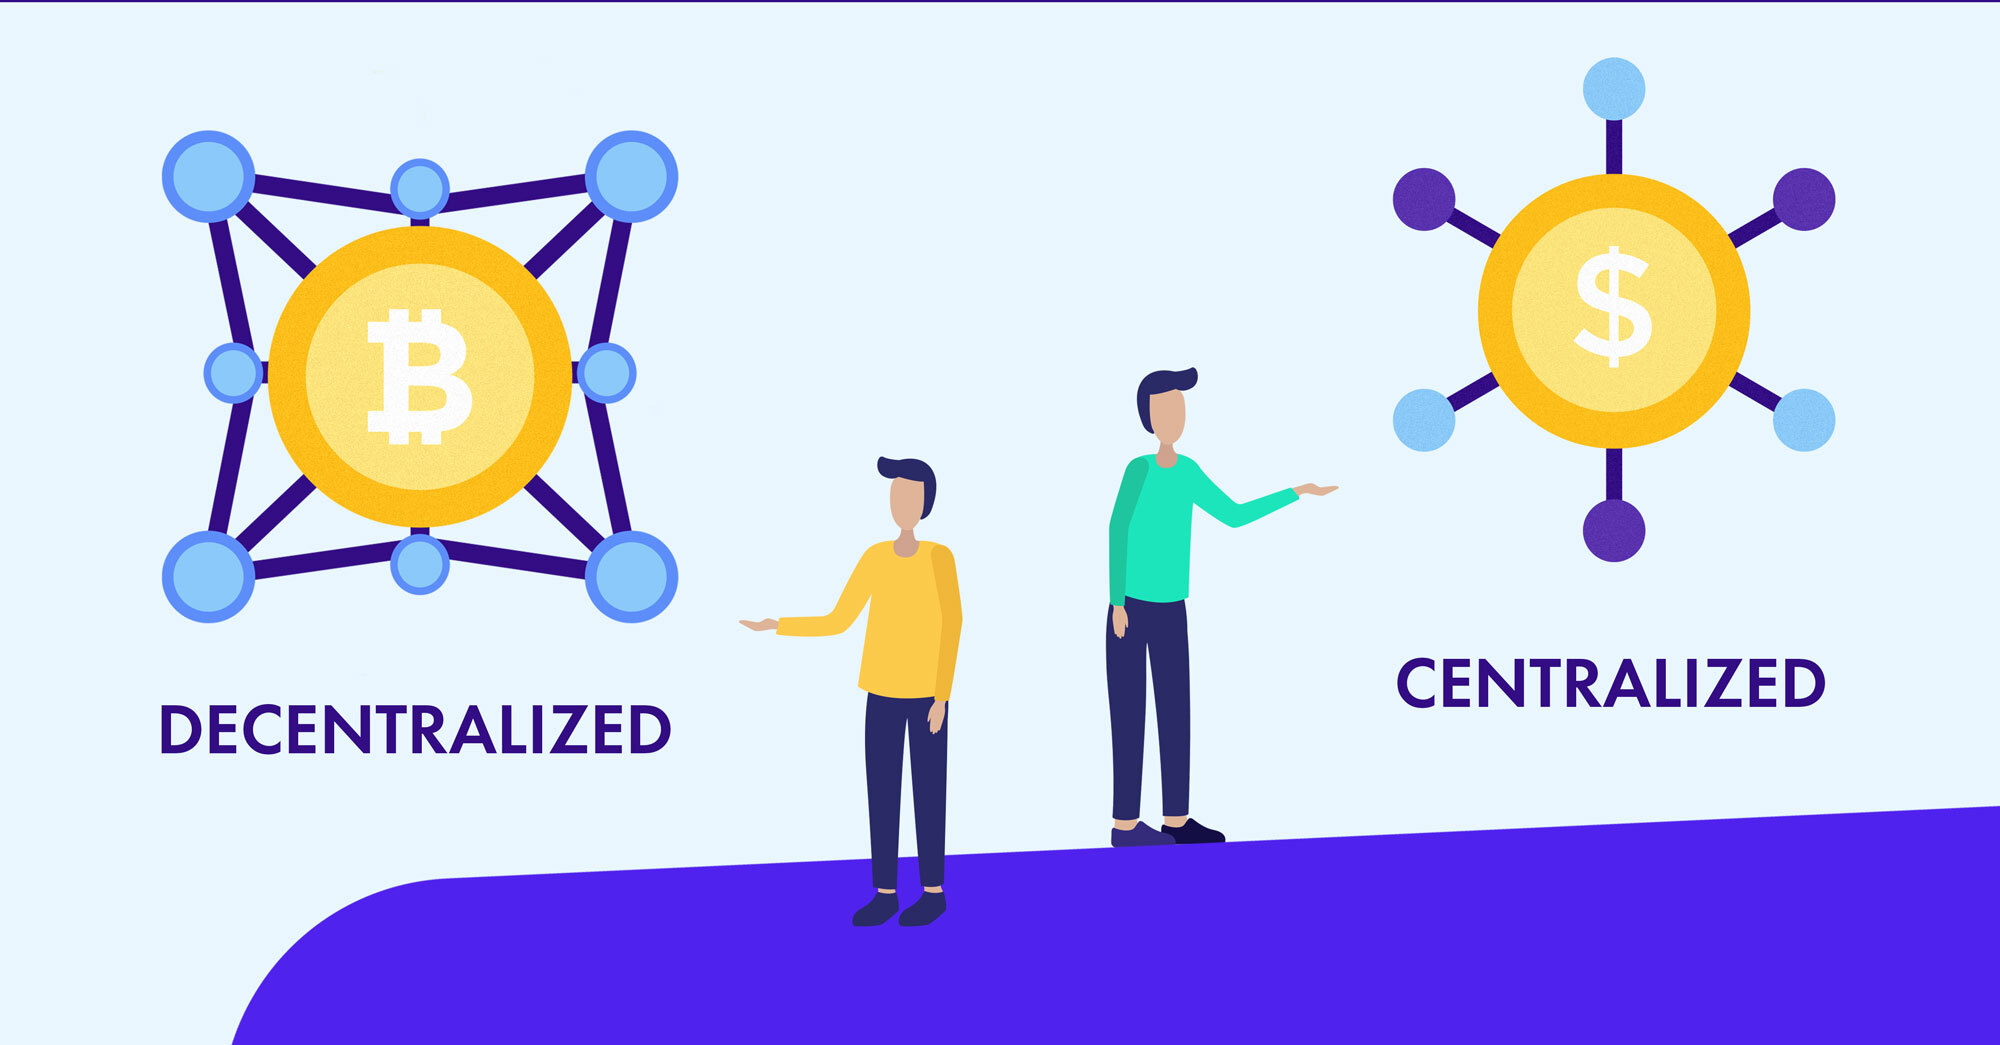 decentralized vs centralized